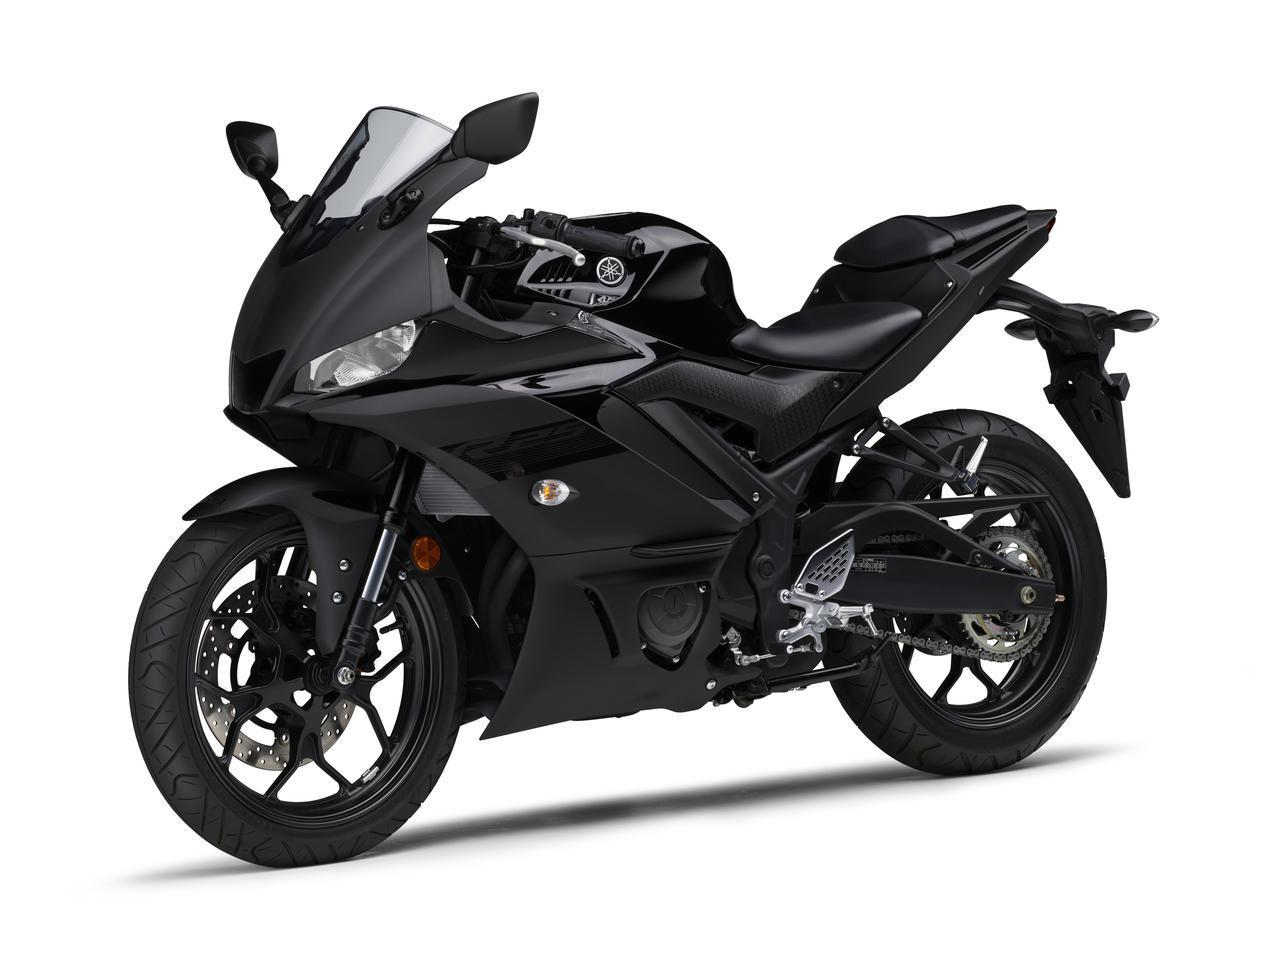 Images : 6番目の画像 - ヤマハ YZF-R25の写真をまとめて見る! - LAWRENCE - Motorcycle x Cars + α = Your Life.